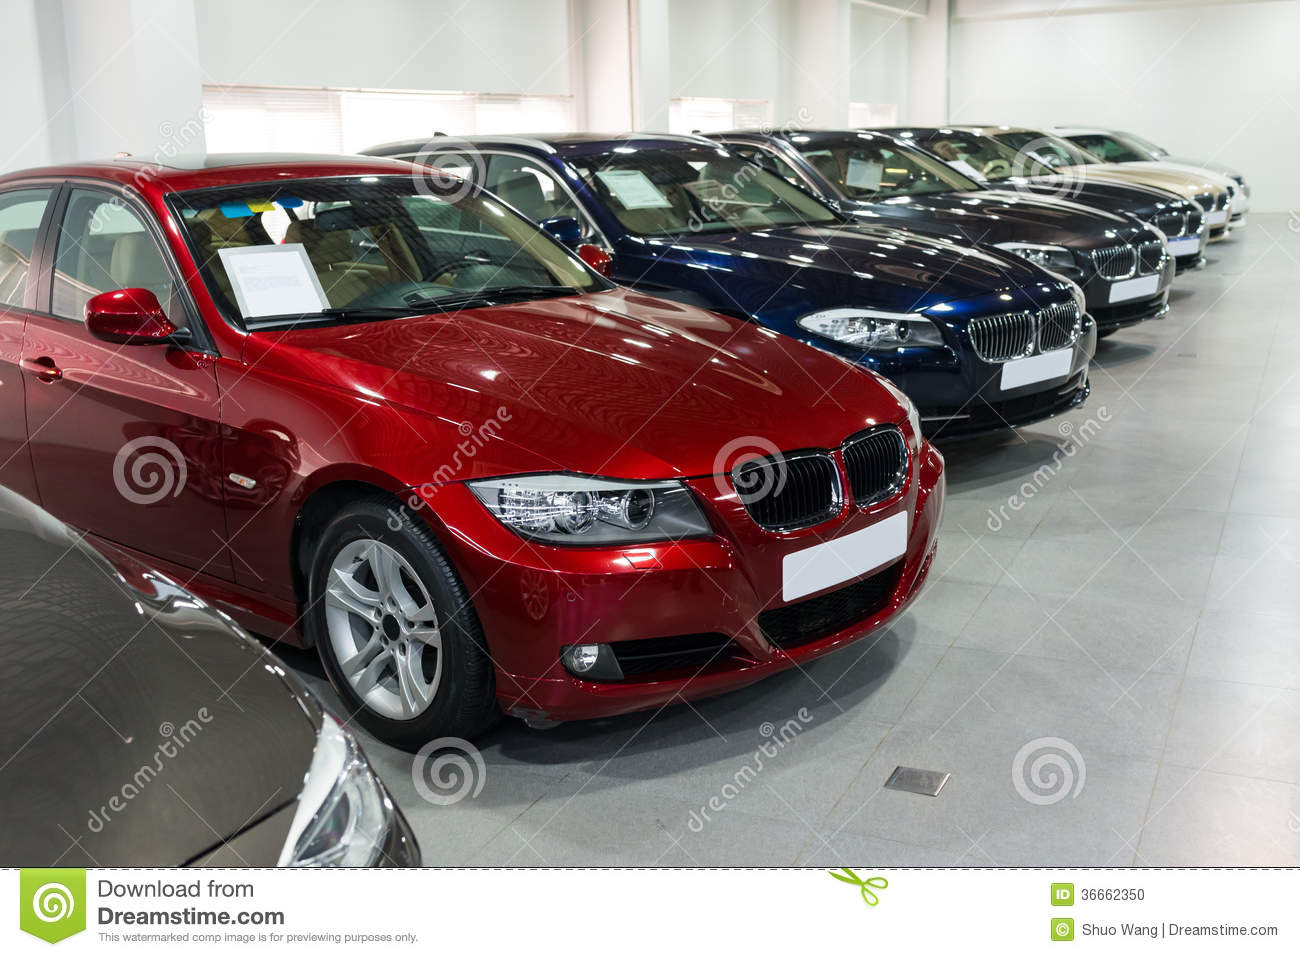 Expensive Car For Sale Or Gift Royalty Free Stock Image: Cars For Sale In Showroom Stock Photo